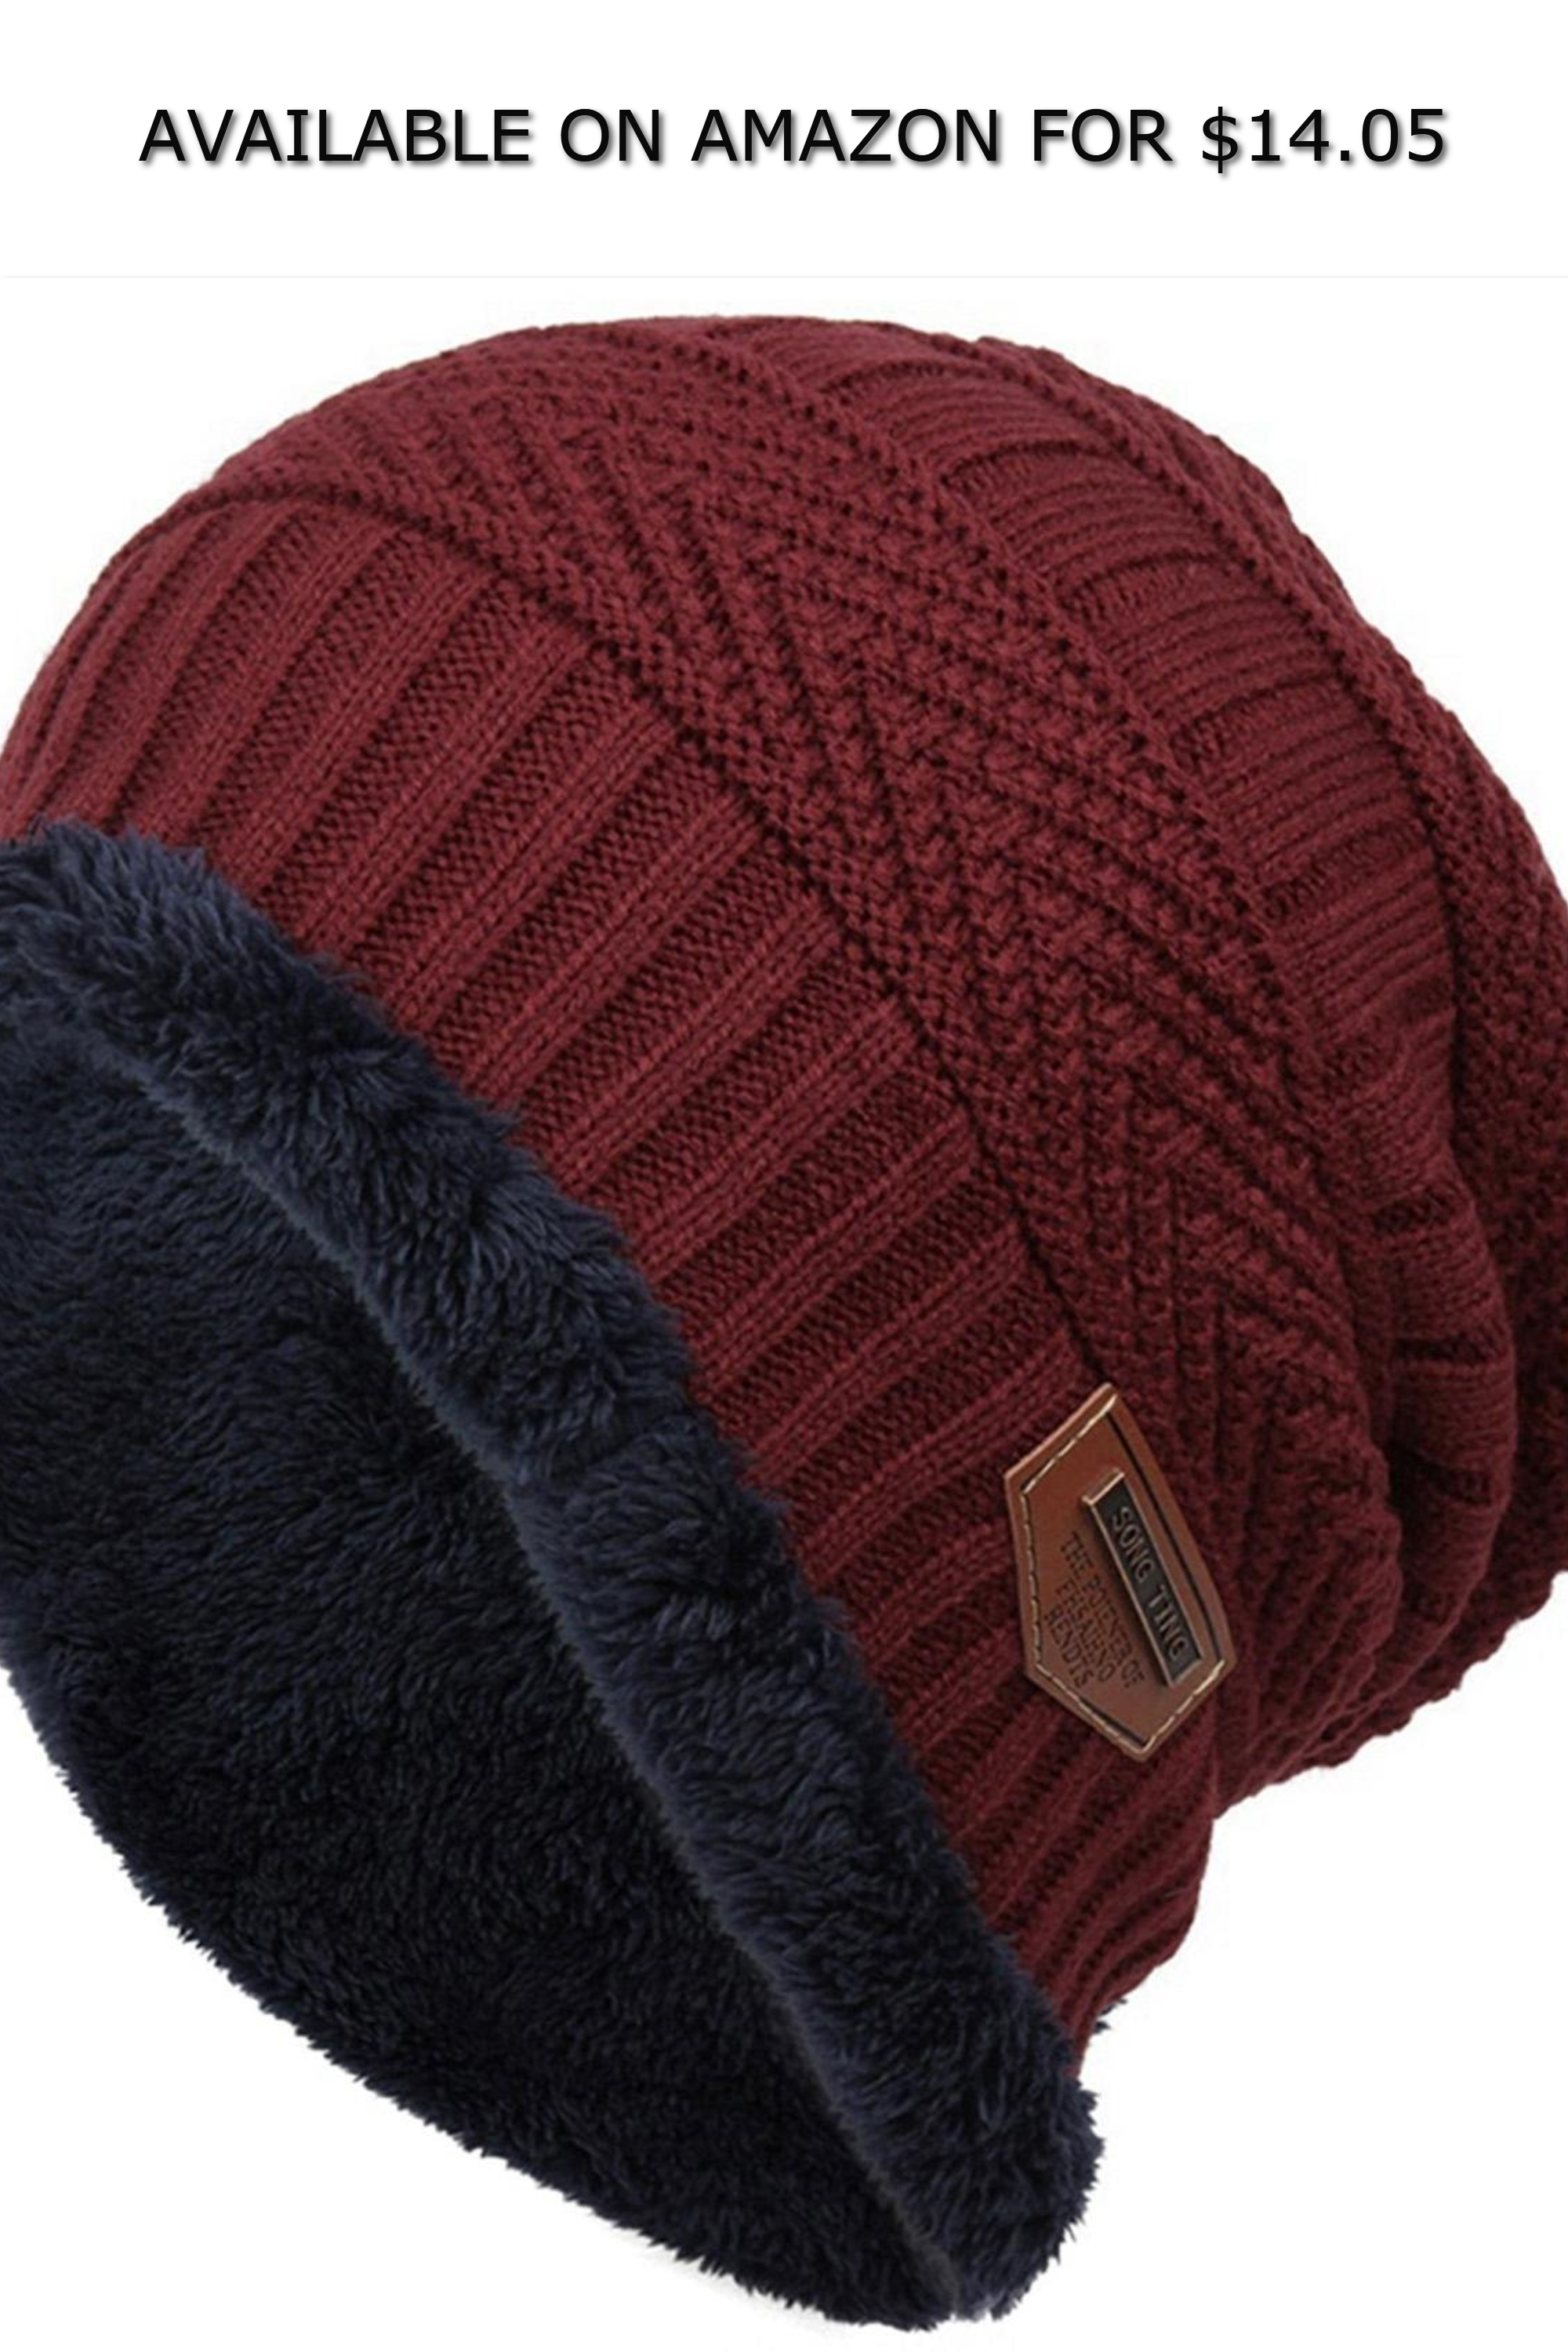 85df2353cae23 Chiak Women Men Fashion Fleece Contrast Color Beanie Knitted Warm Winter  Hats Caps ◇ AVAILABLE ON